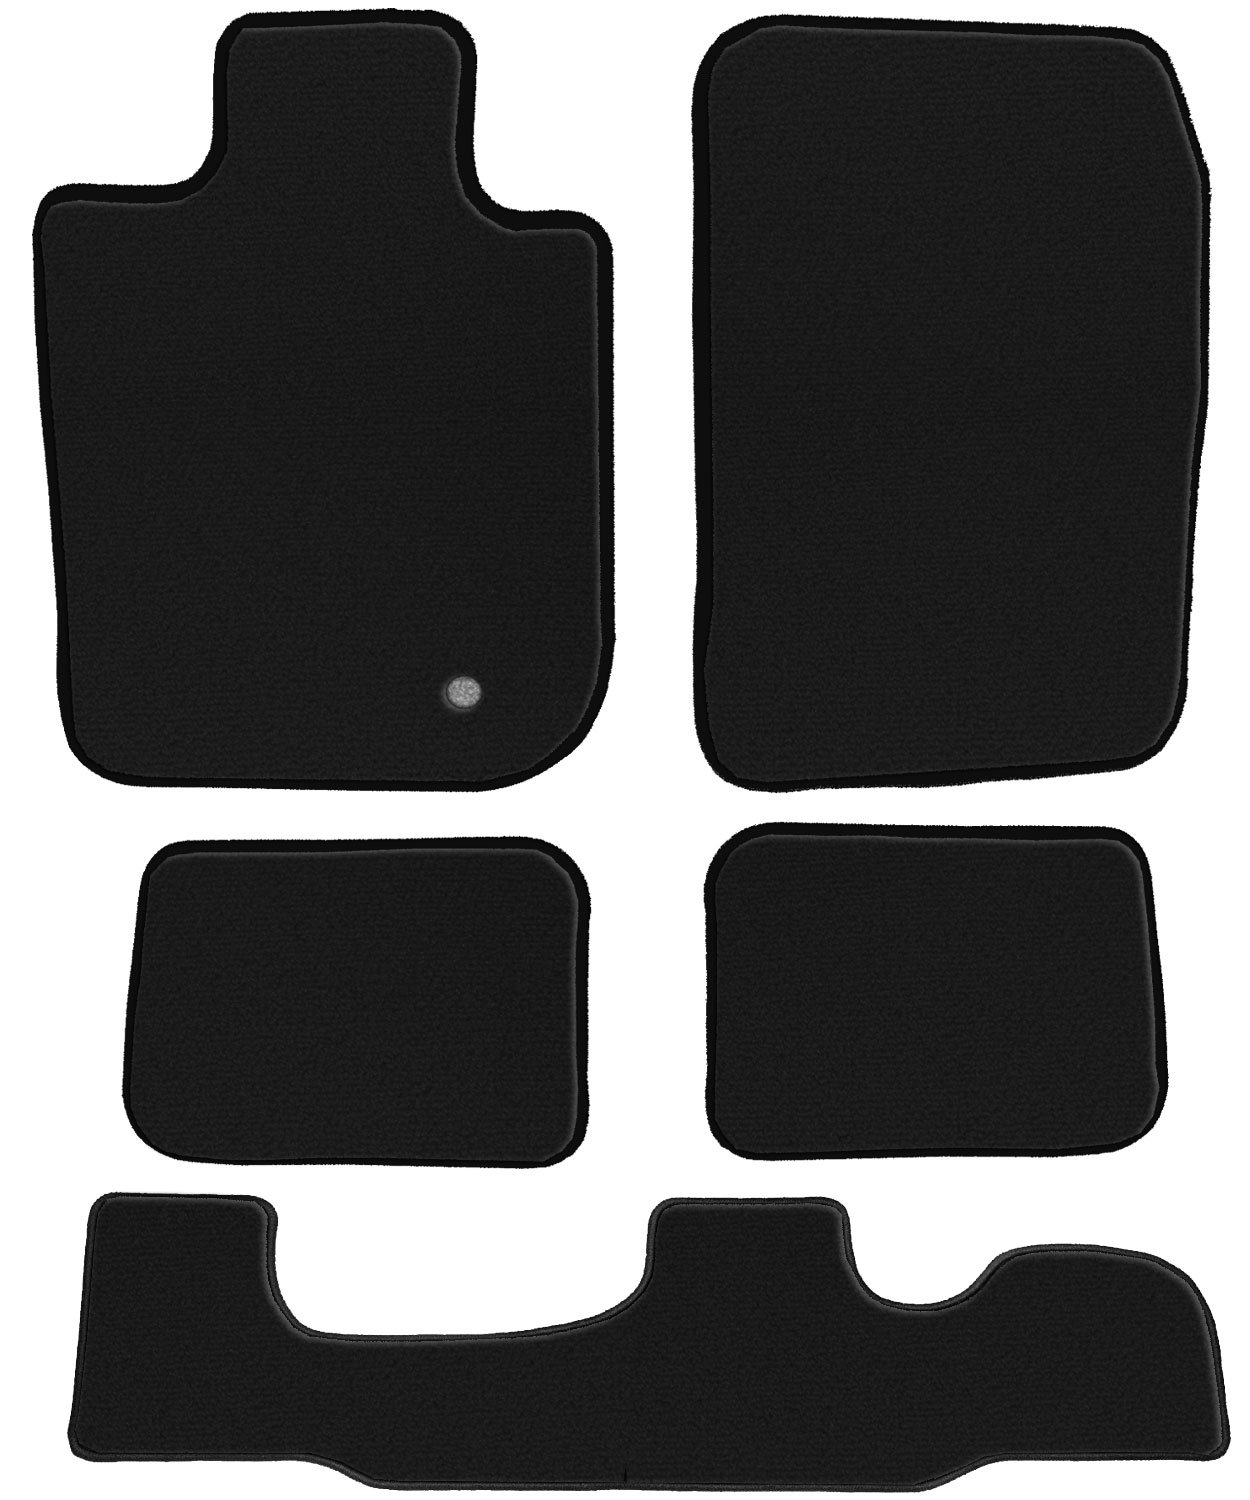 2003 Chrysler Voyager Mini Passenger Van Black Loop Driver GGBAILEY D3670A-LSA-BK-LP Custom Fit Car Mats for 2000 2002 2001 2nd /& 3rd Row 4 Piece Floor